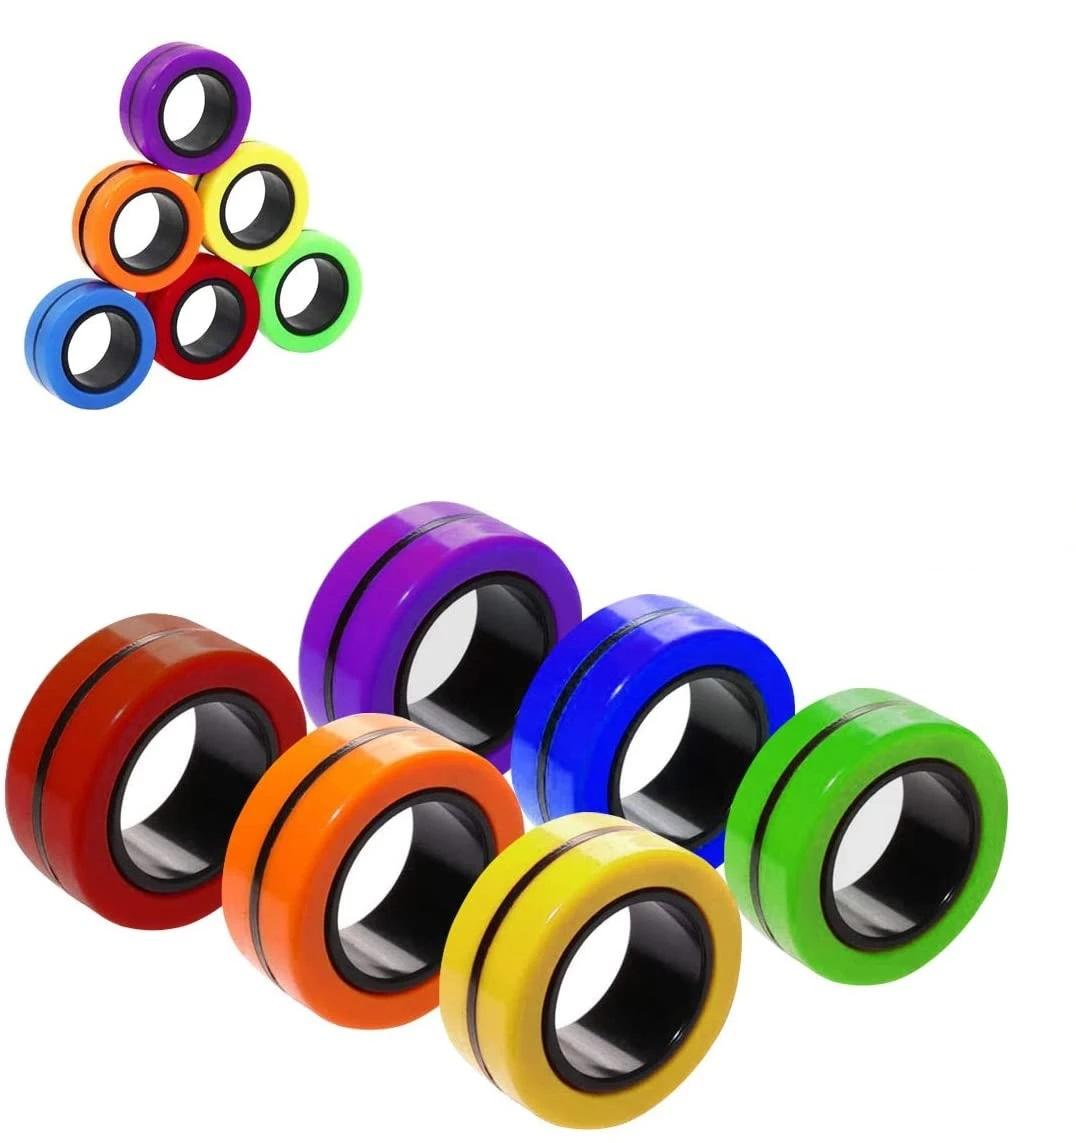 2021 Anti-Stress Magnetic Rings Fidget Unzip Toy Magic RingTools Children Finger Spinner Ring Adult Decompression Toys